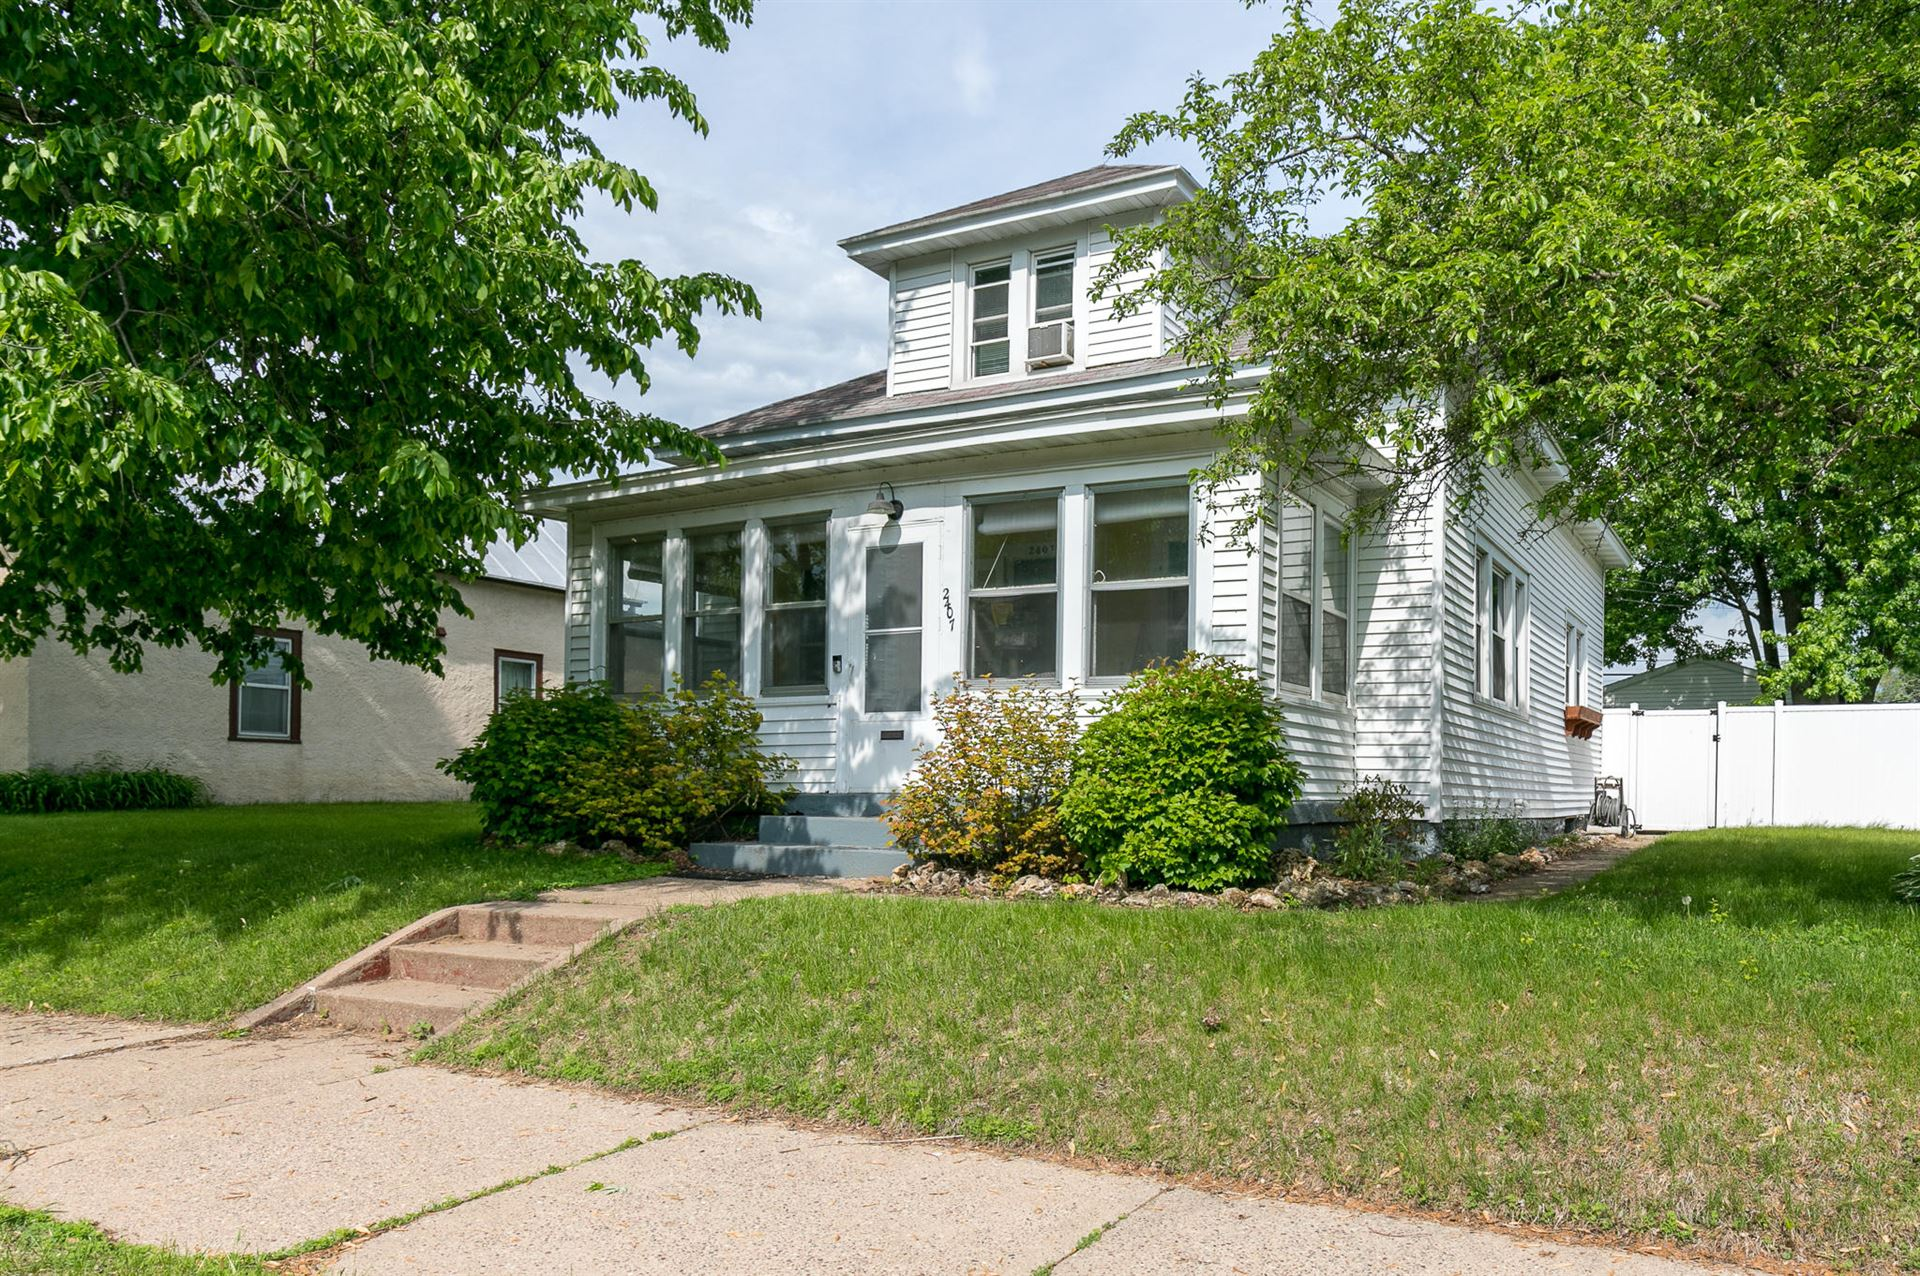 2407 13th Pl S, La Crosse, WI 54601 - MLS#: 1690962